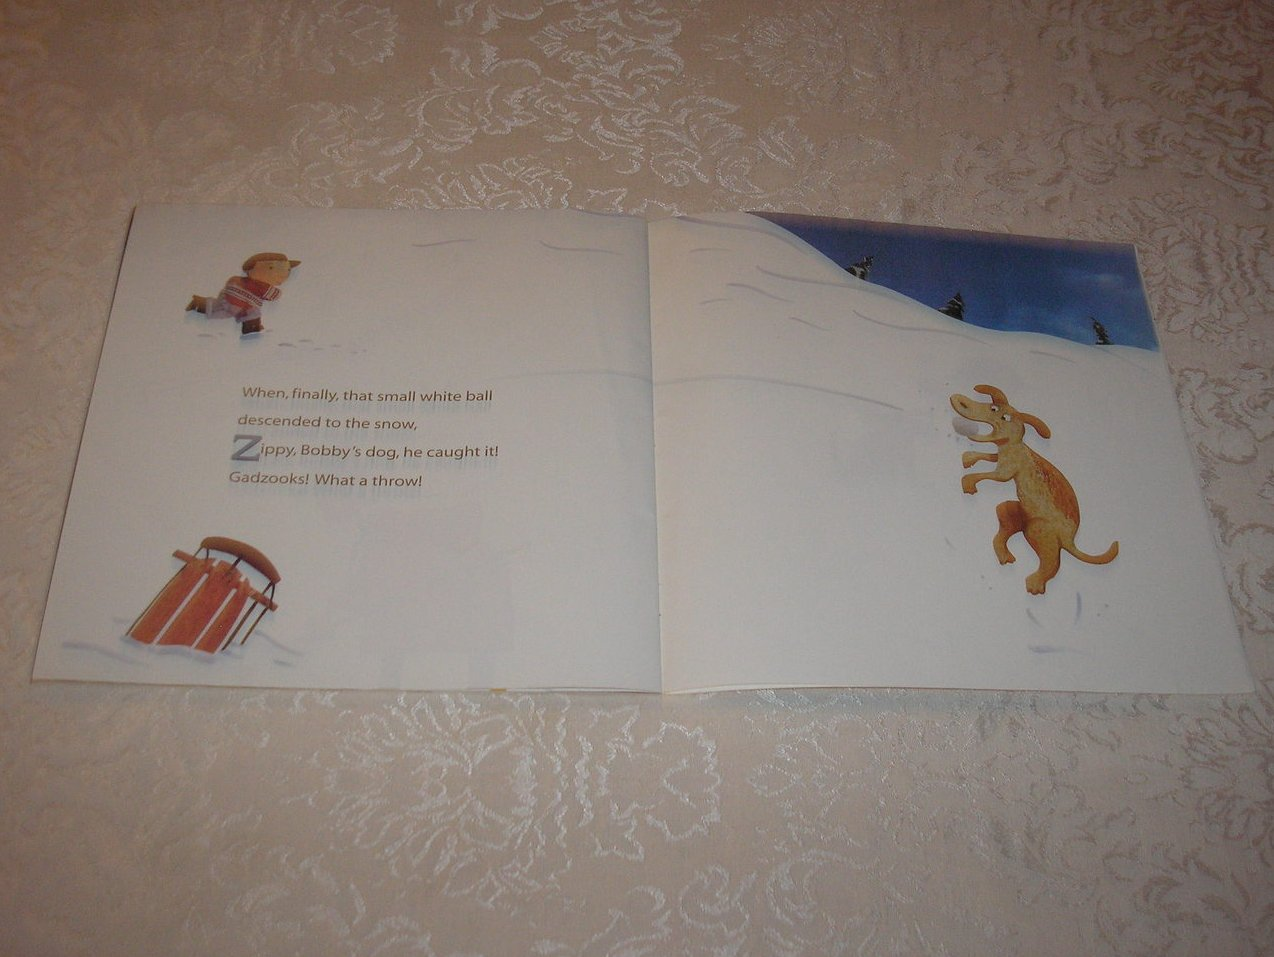 Image 5 of Avalanche Michael J. Rosen Good Rare Alphabet Softcover